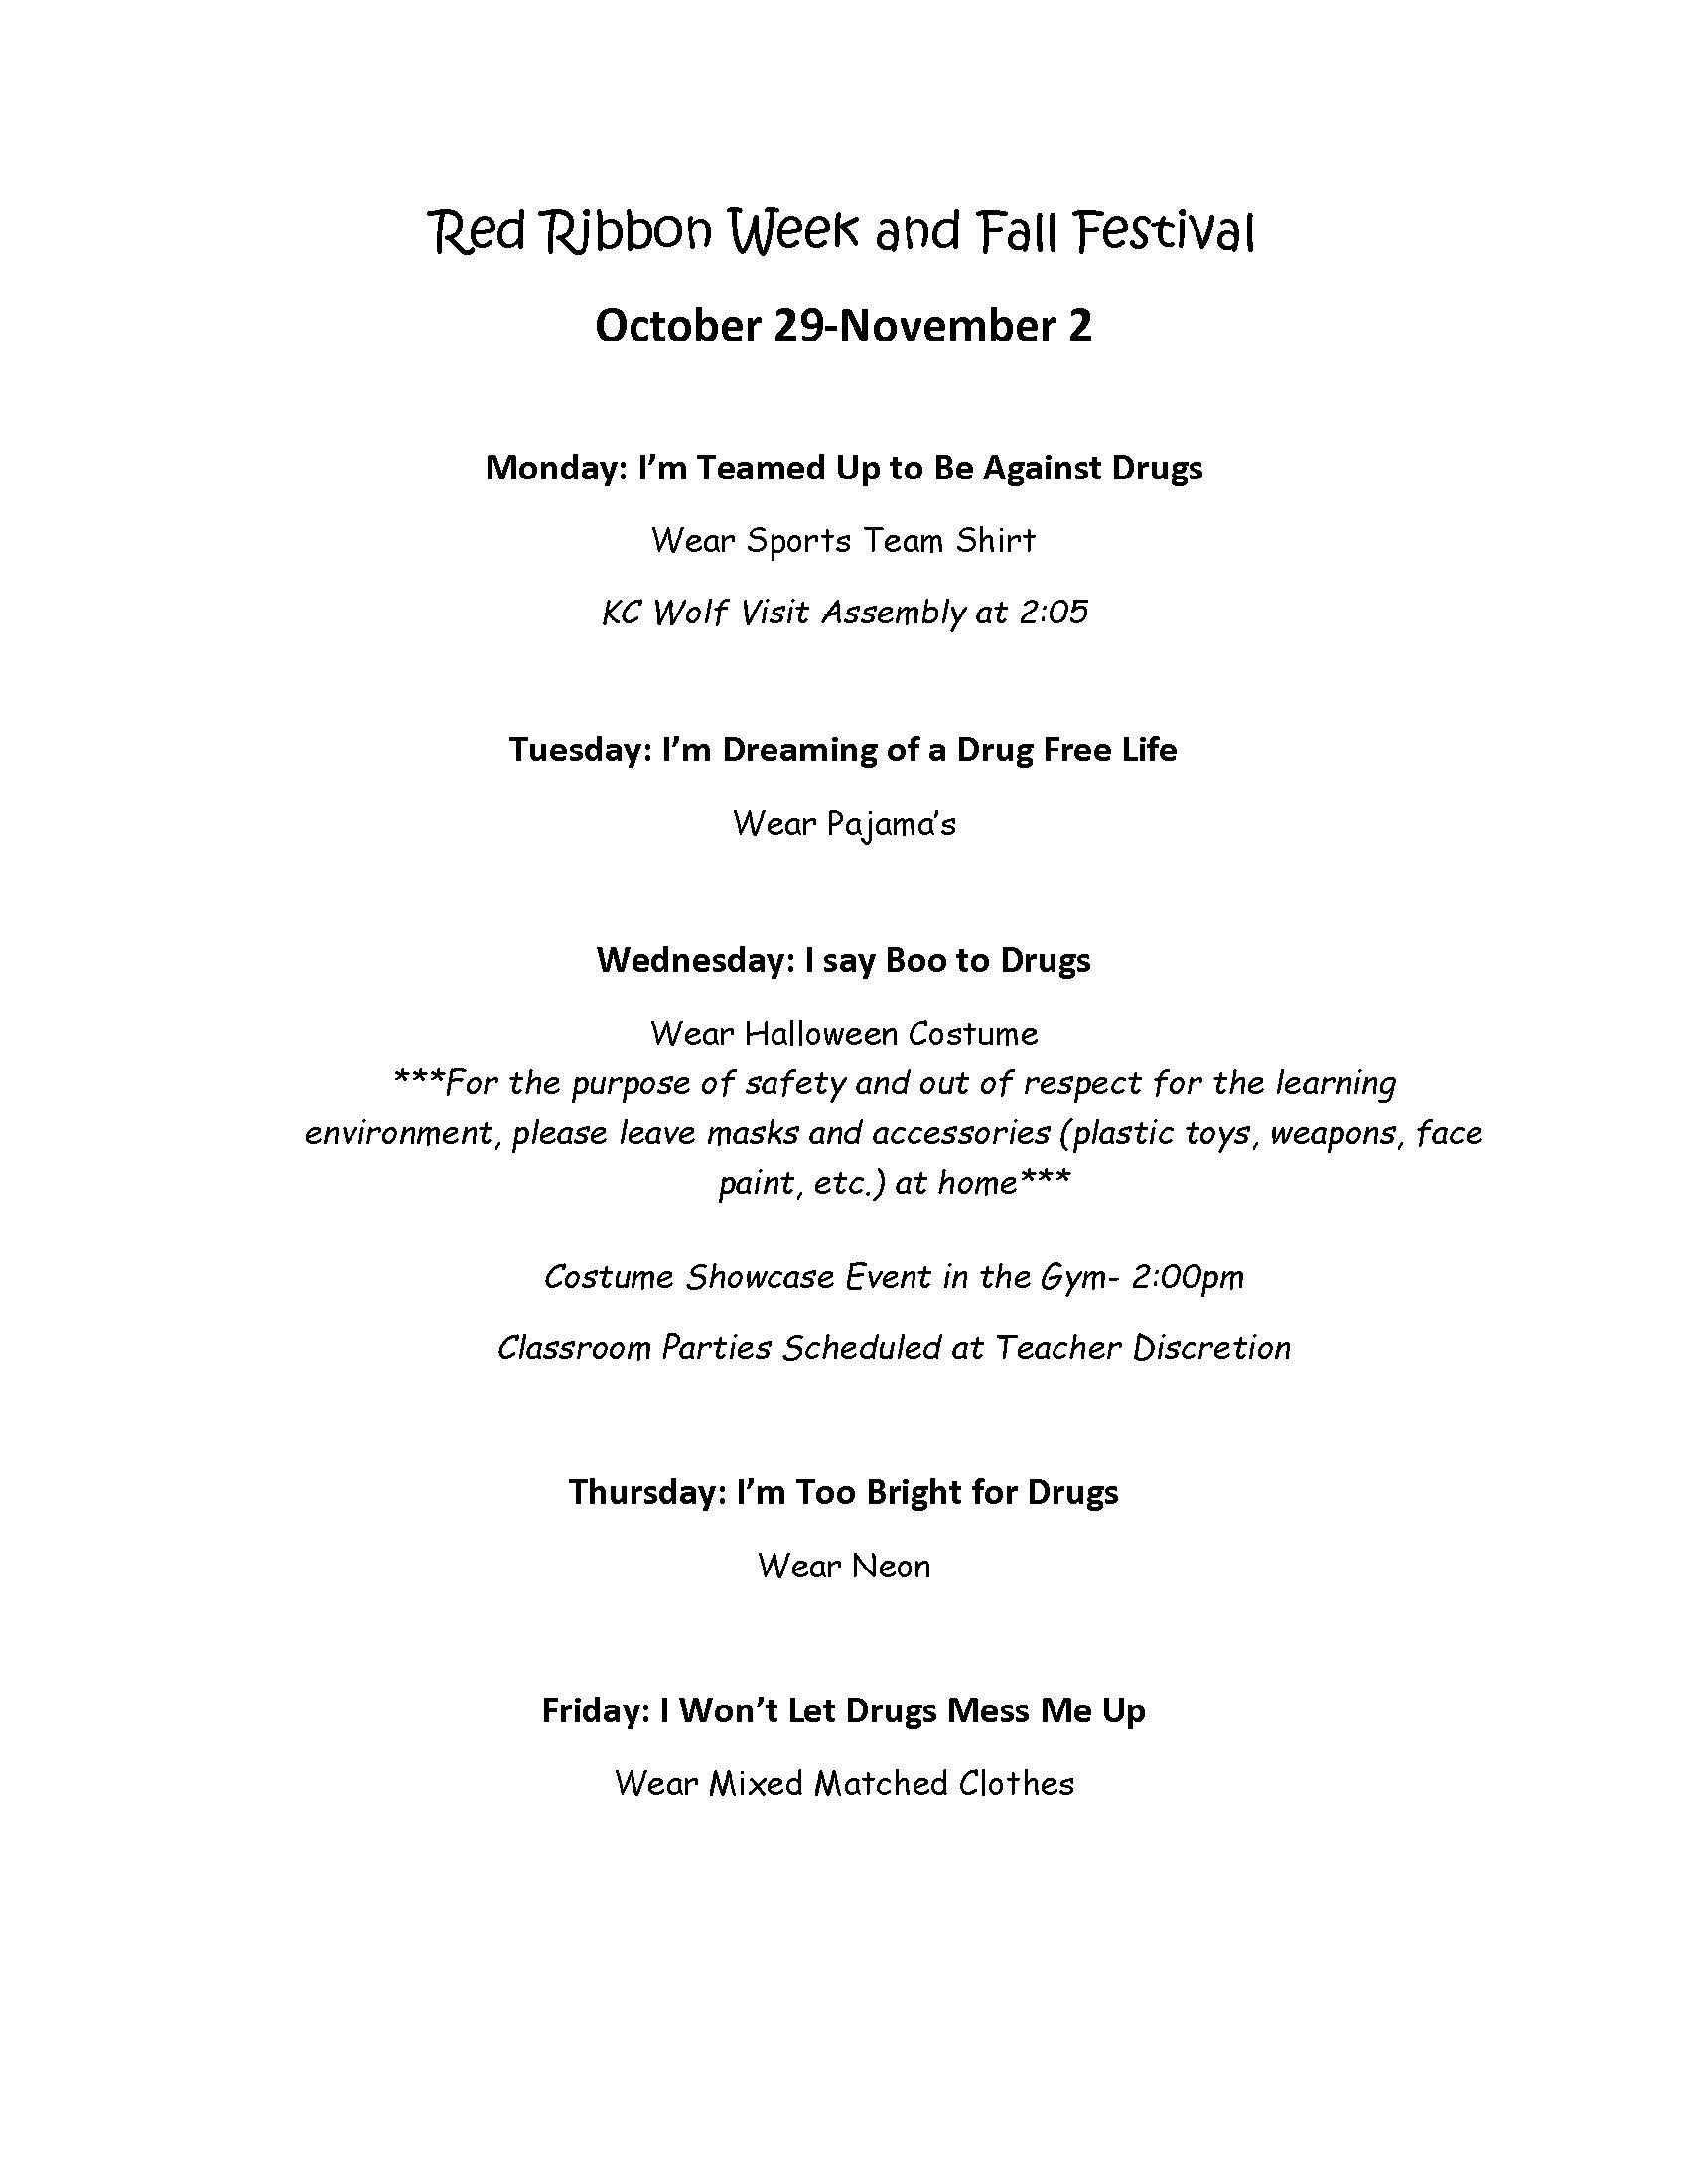 Flyer for Red Ribbon Week. All information is above.